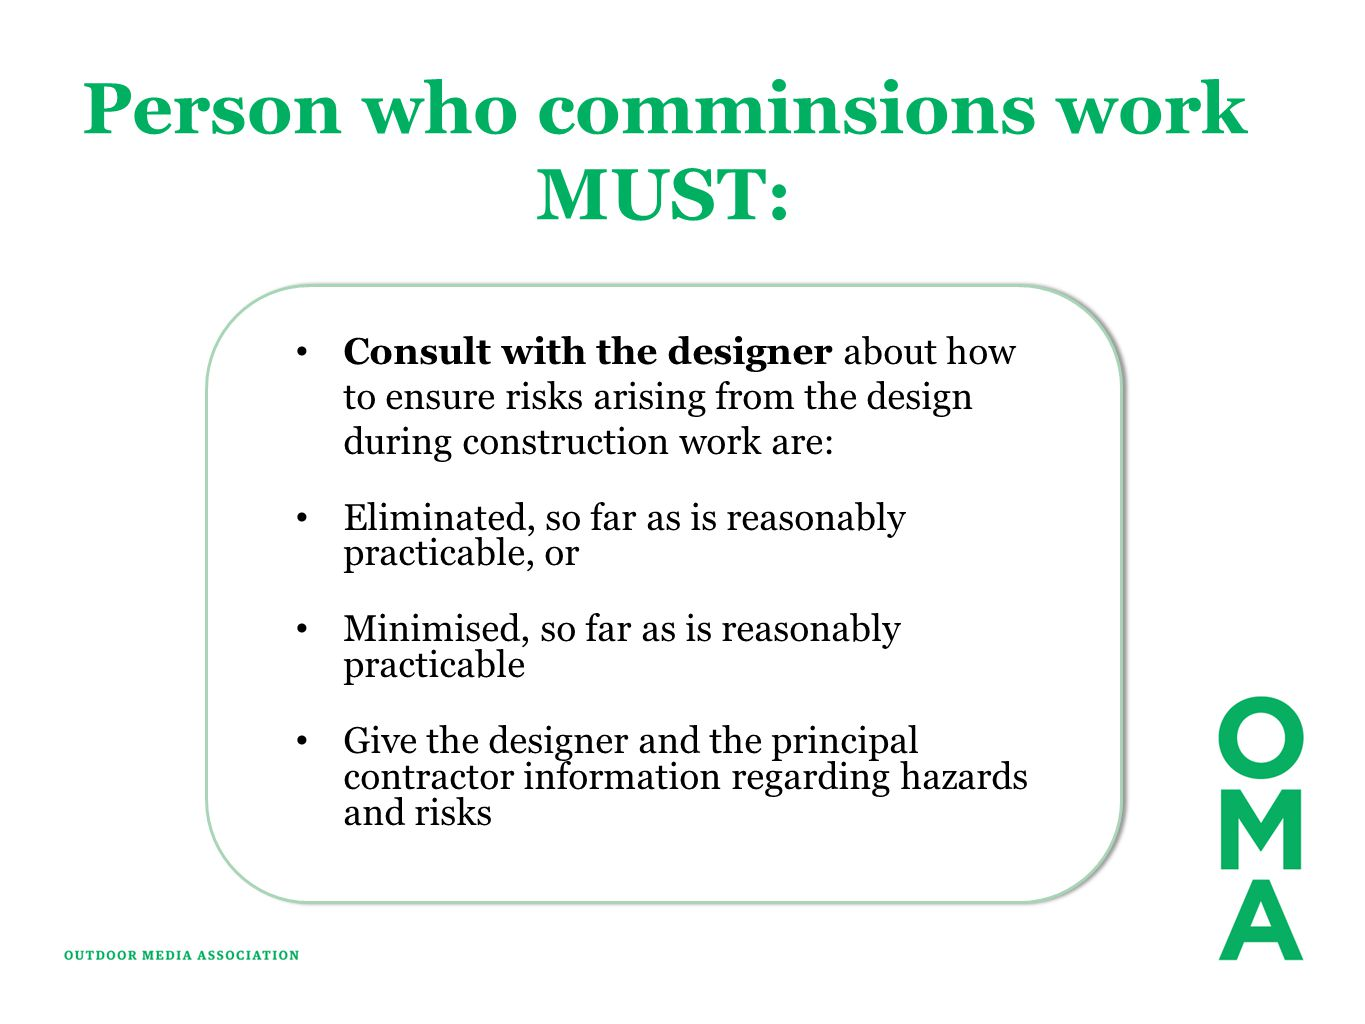 Person who comminsions work MUST: